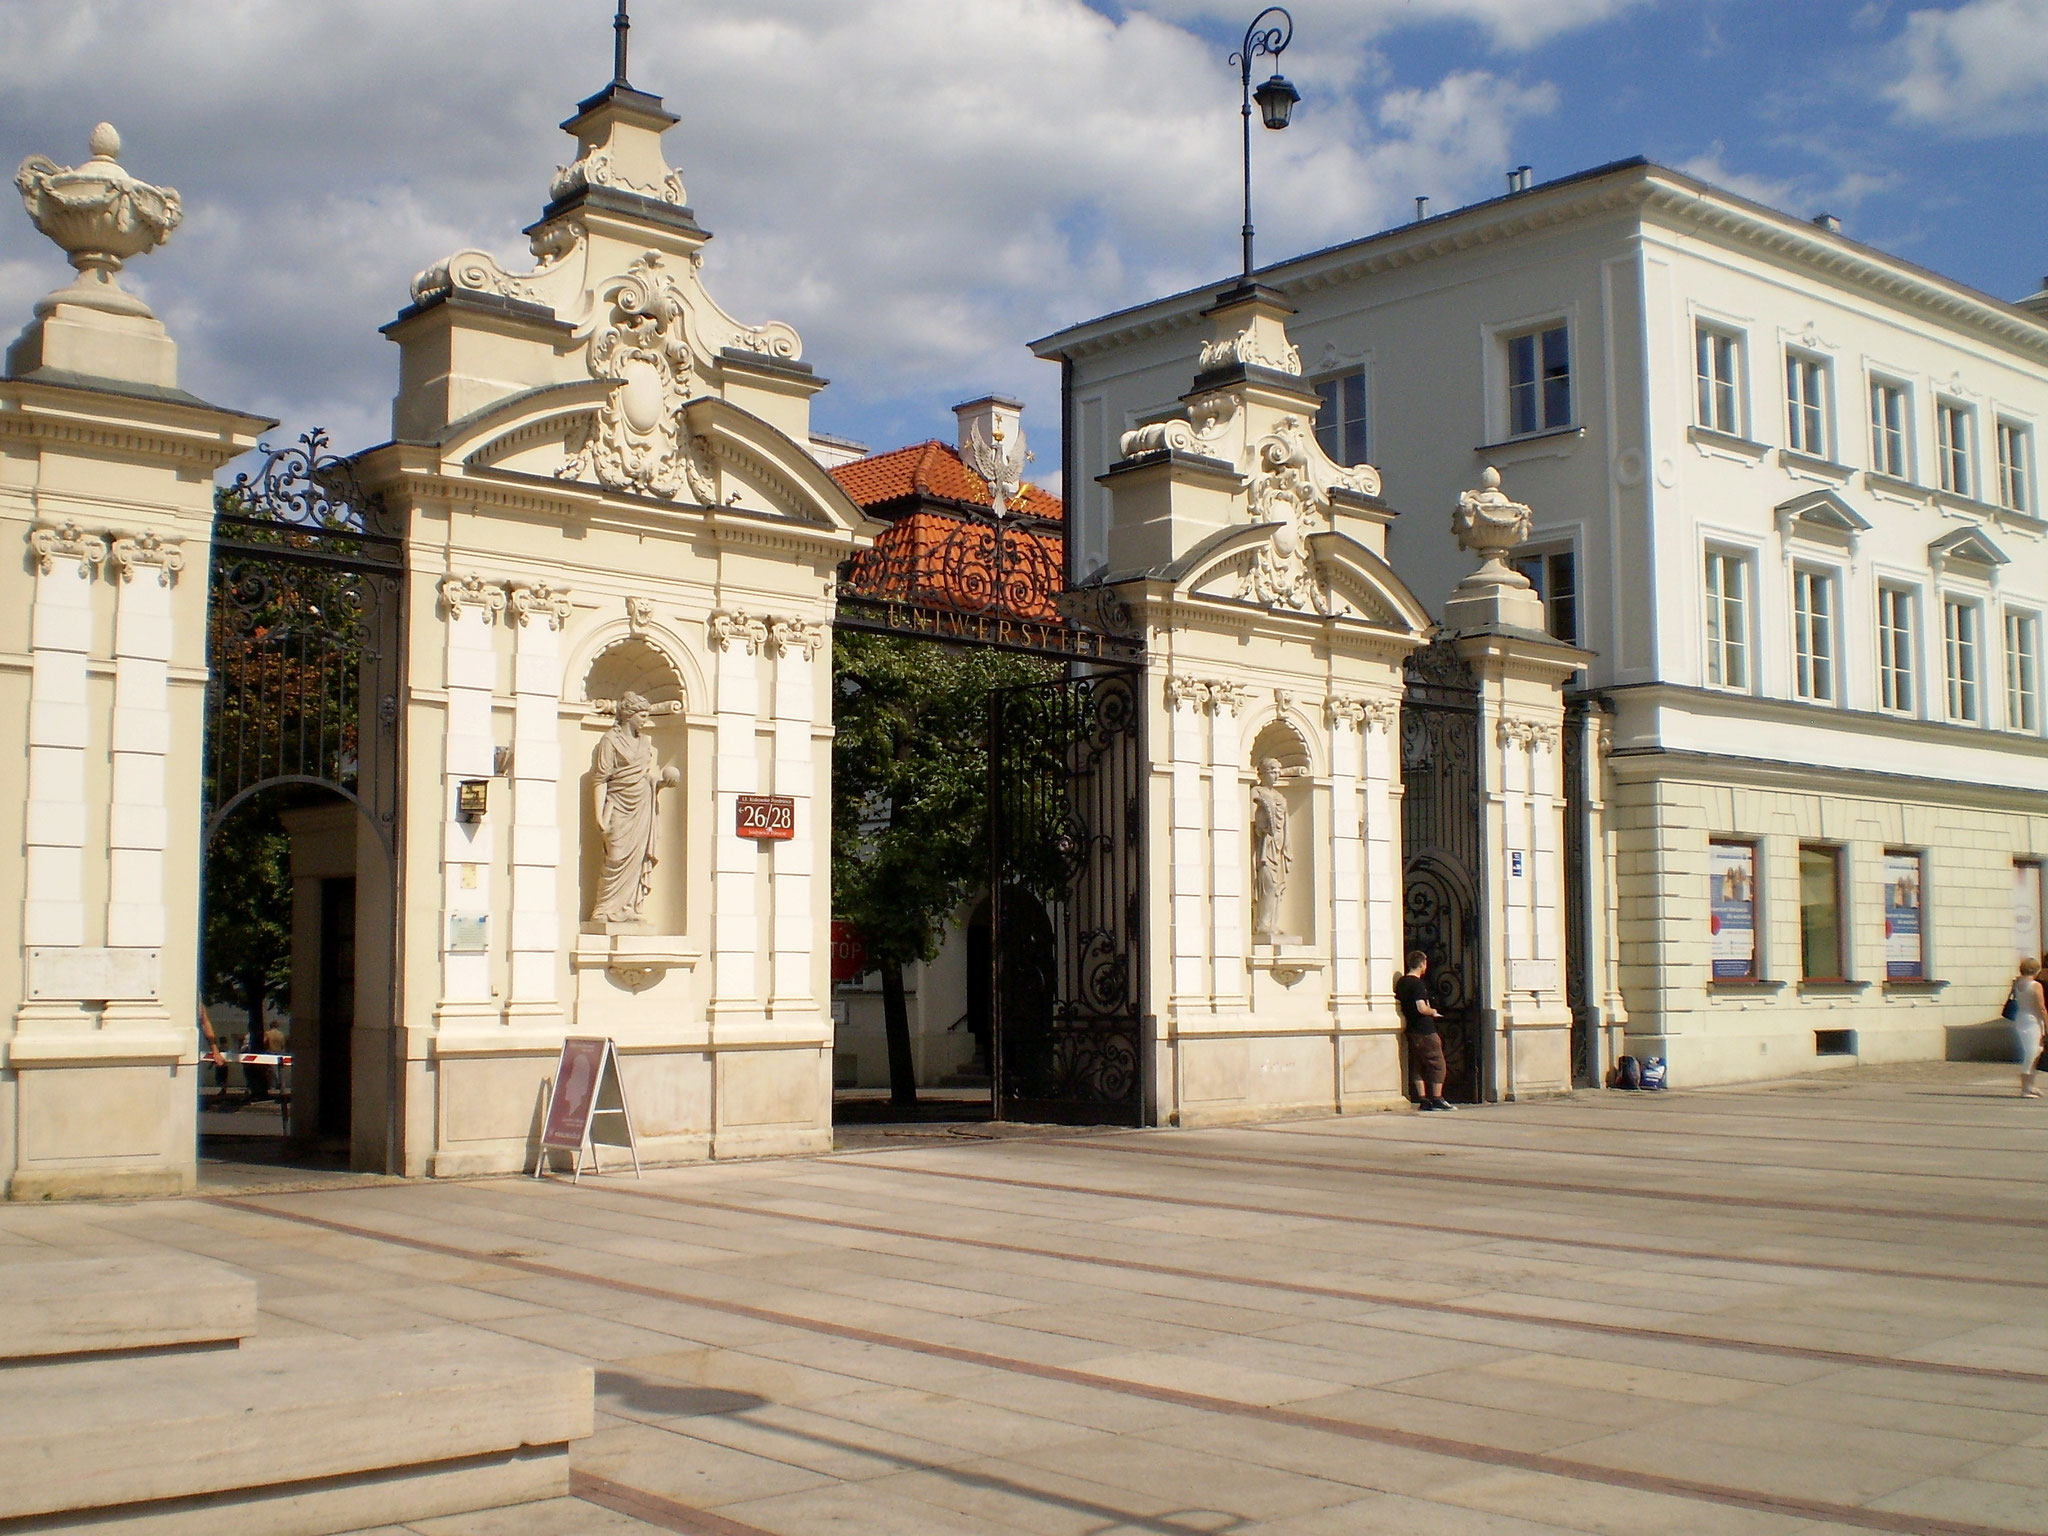 UNIVERSIDAD DE VARSOVIA